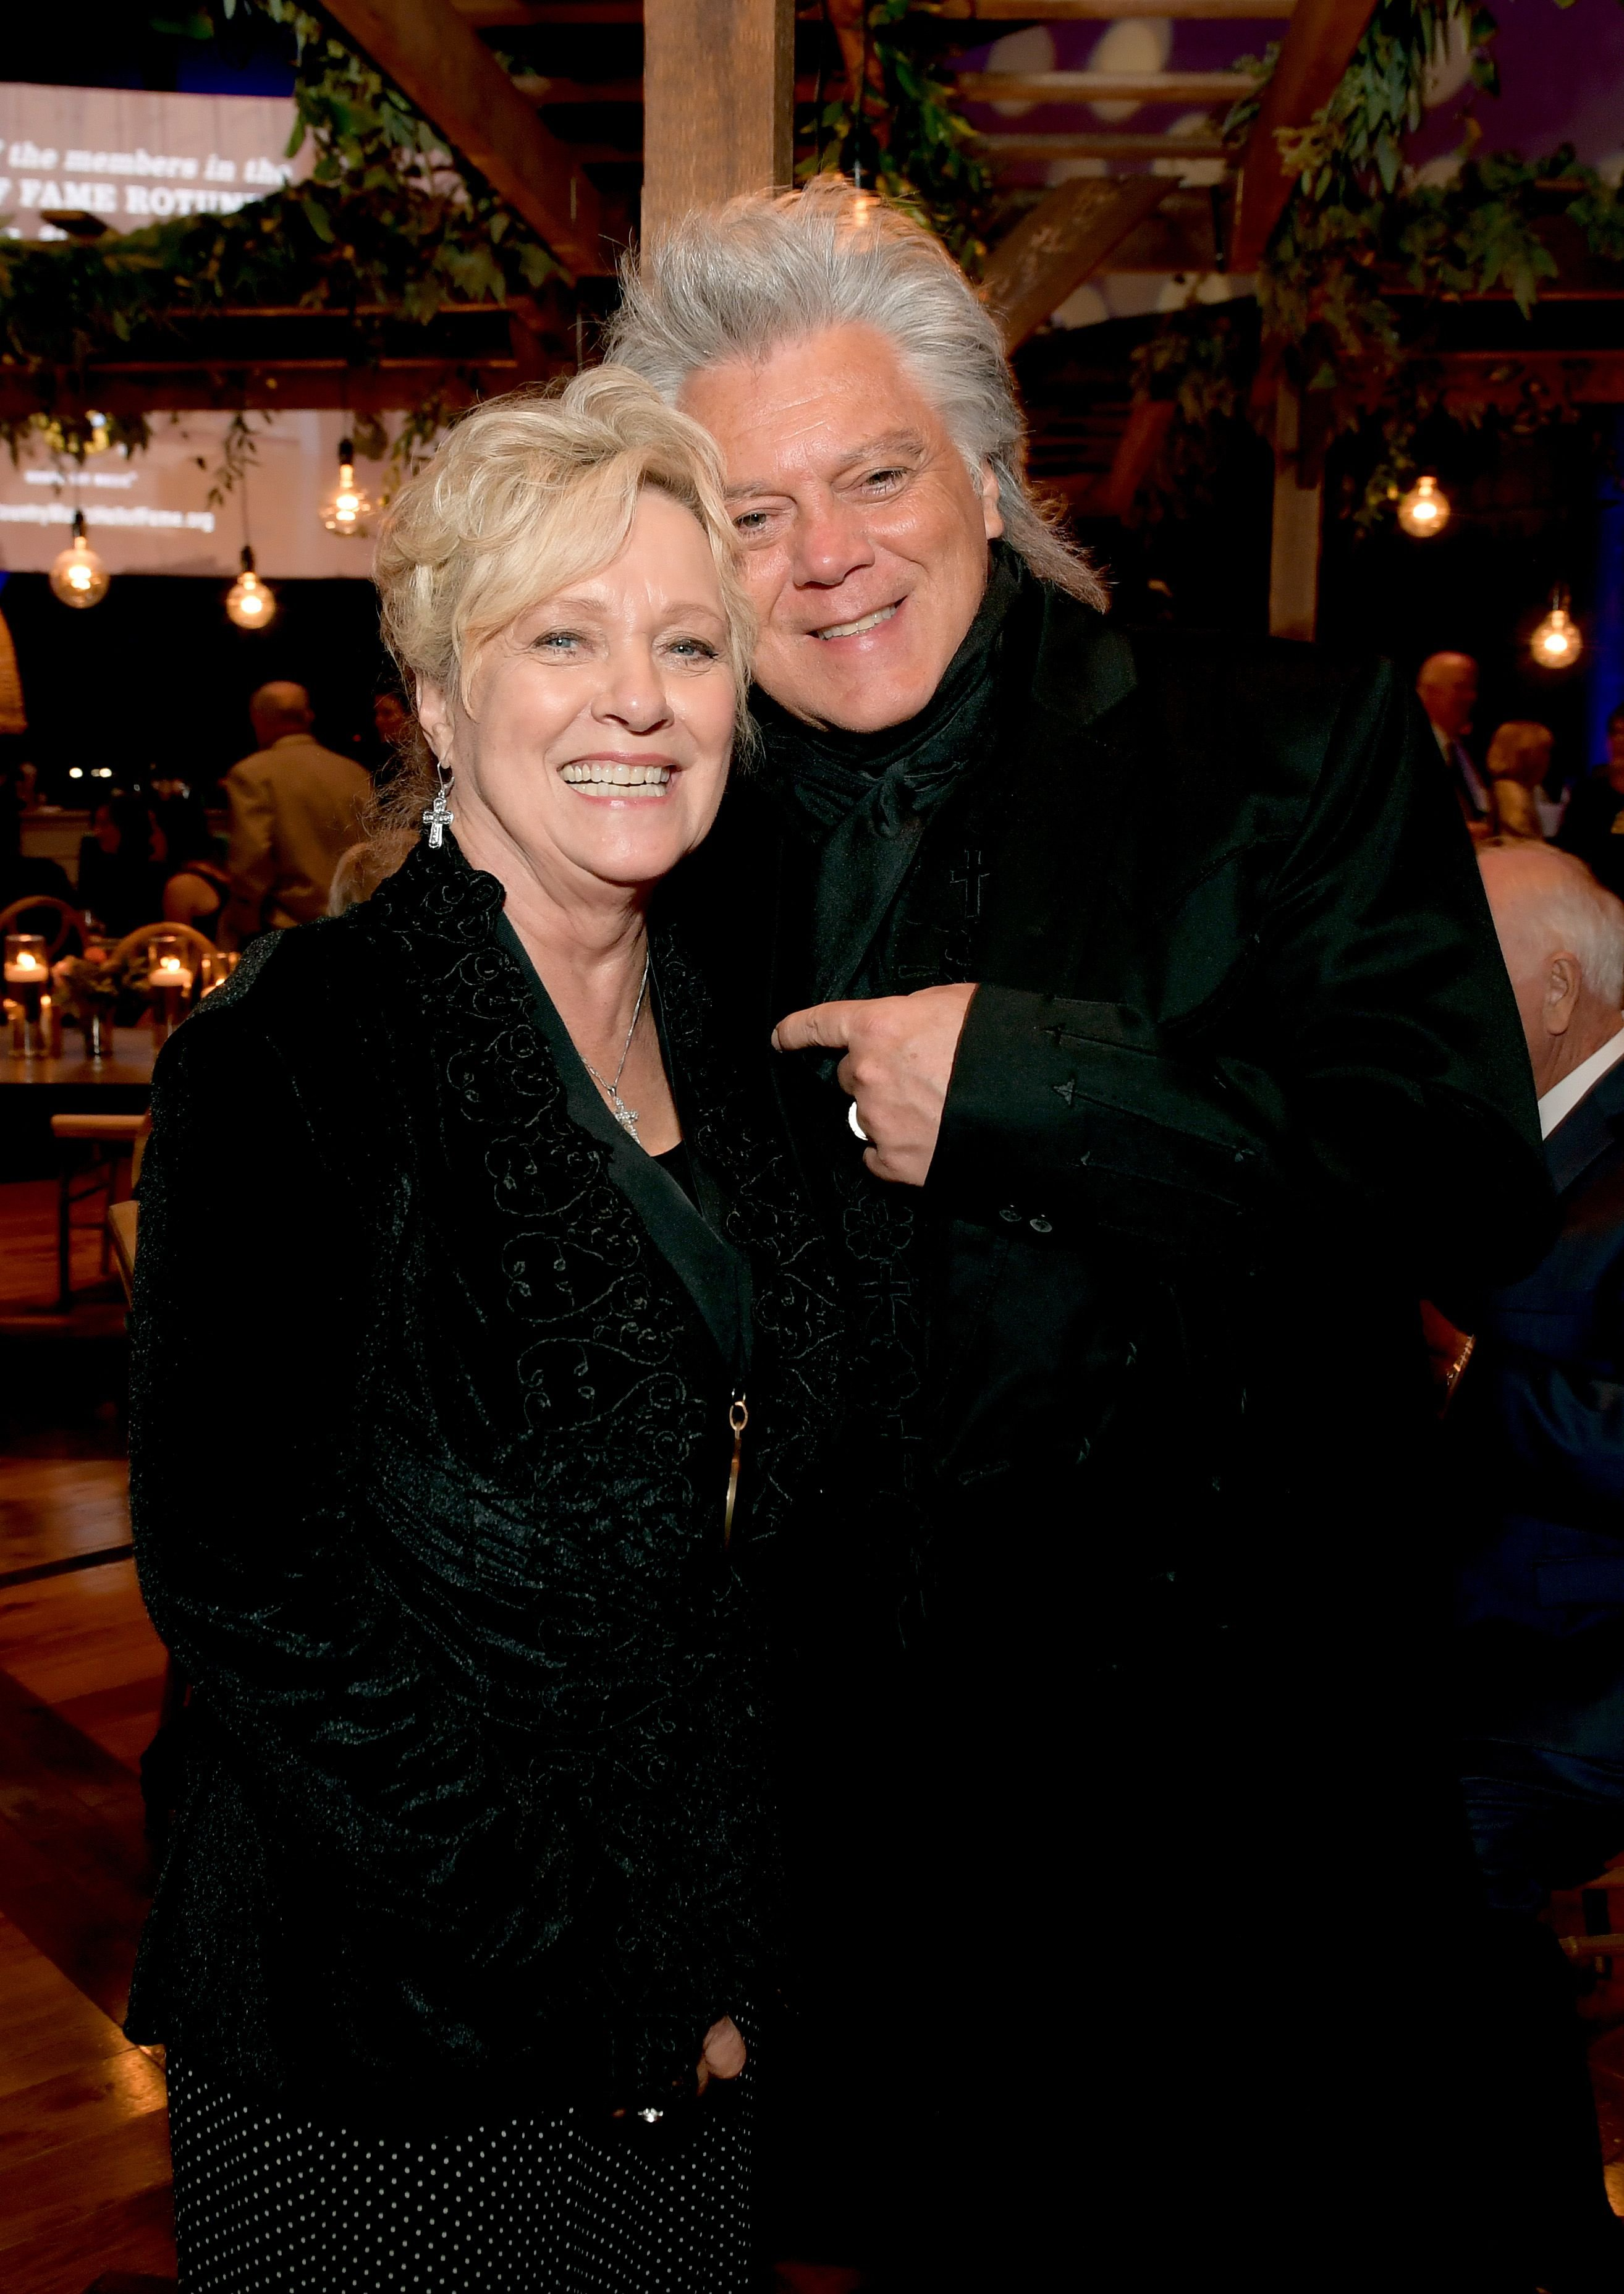 Connie Smith and Marty Stuart at the 2019 Country Music Hall of Fame Medallion Ceremony on October 20, 2019. | Photo: Getty Images